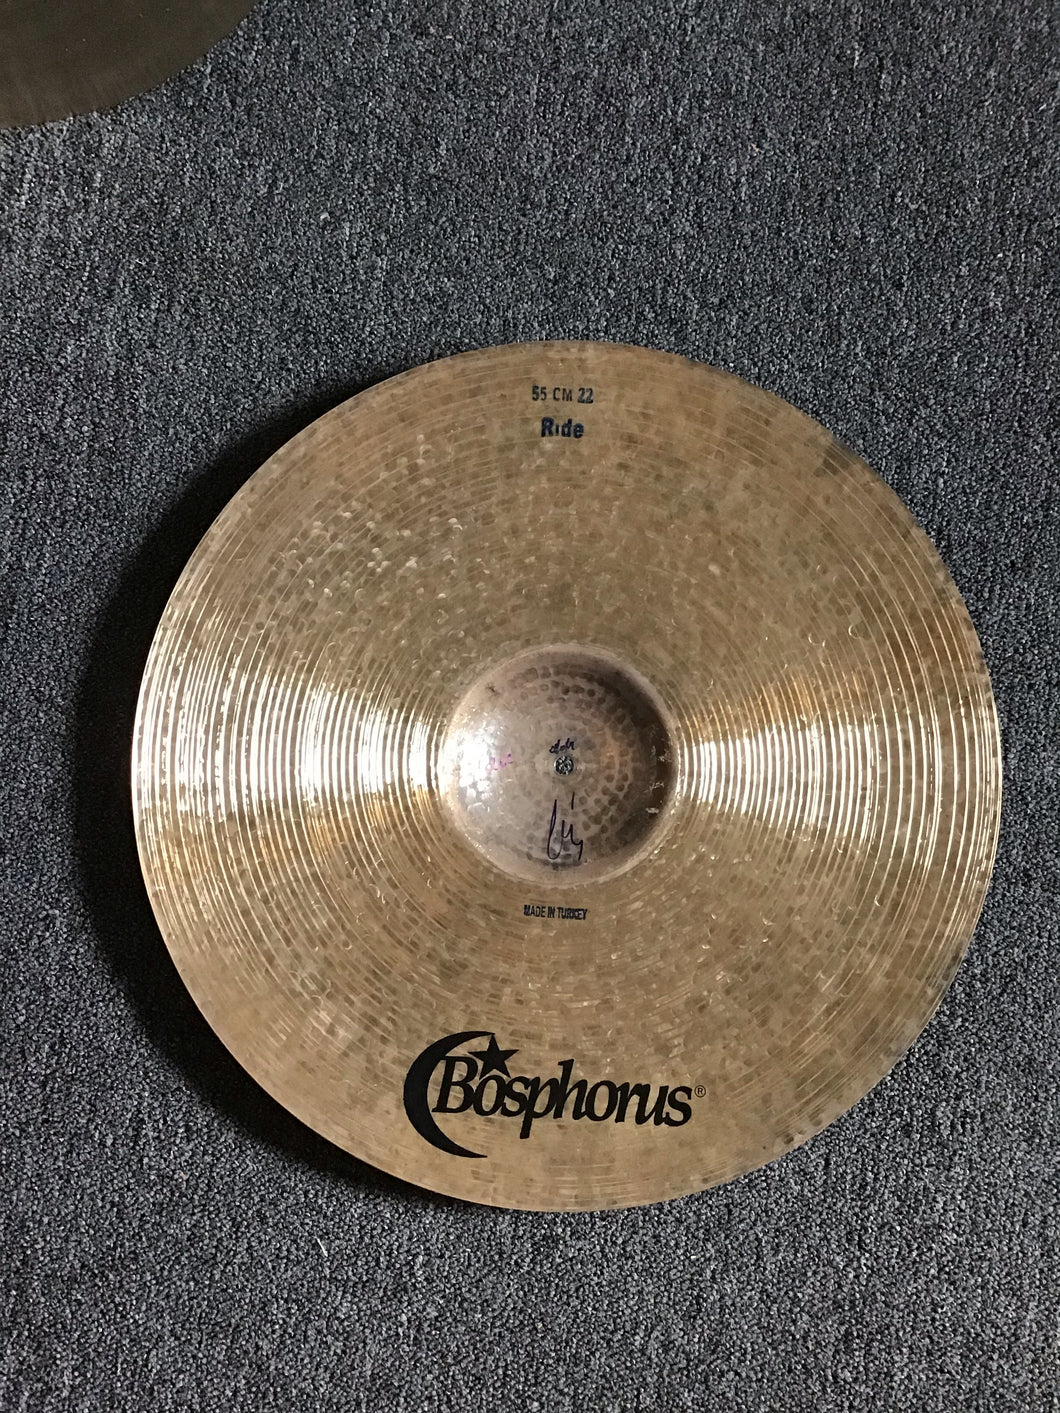 "Bosphorus PROTOTYPE Oracle Series 14"" Hihats t-976g b-1236g"